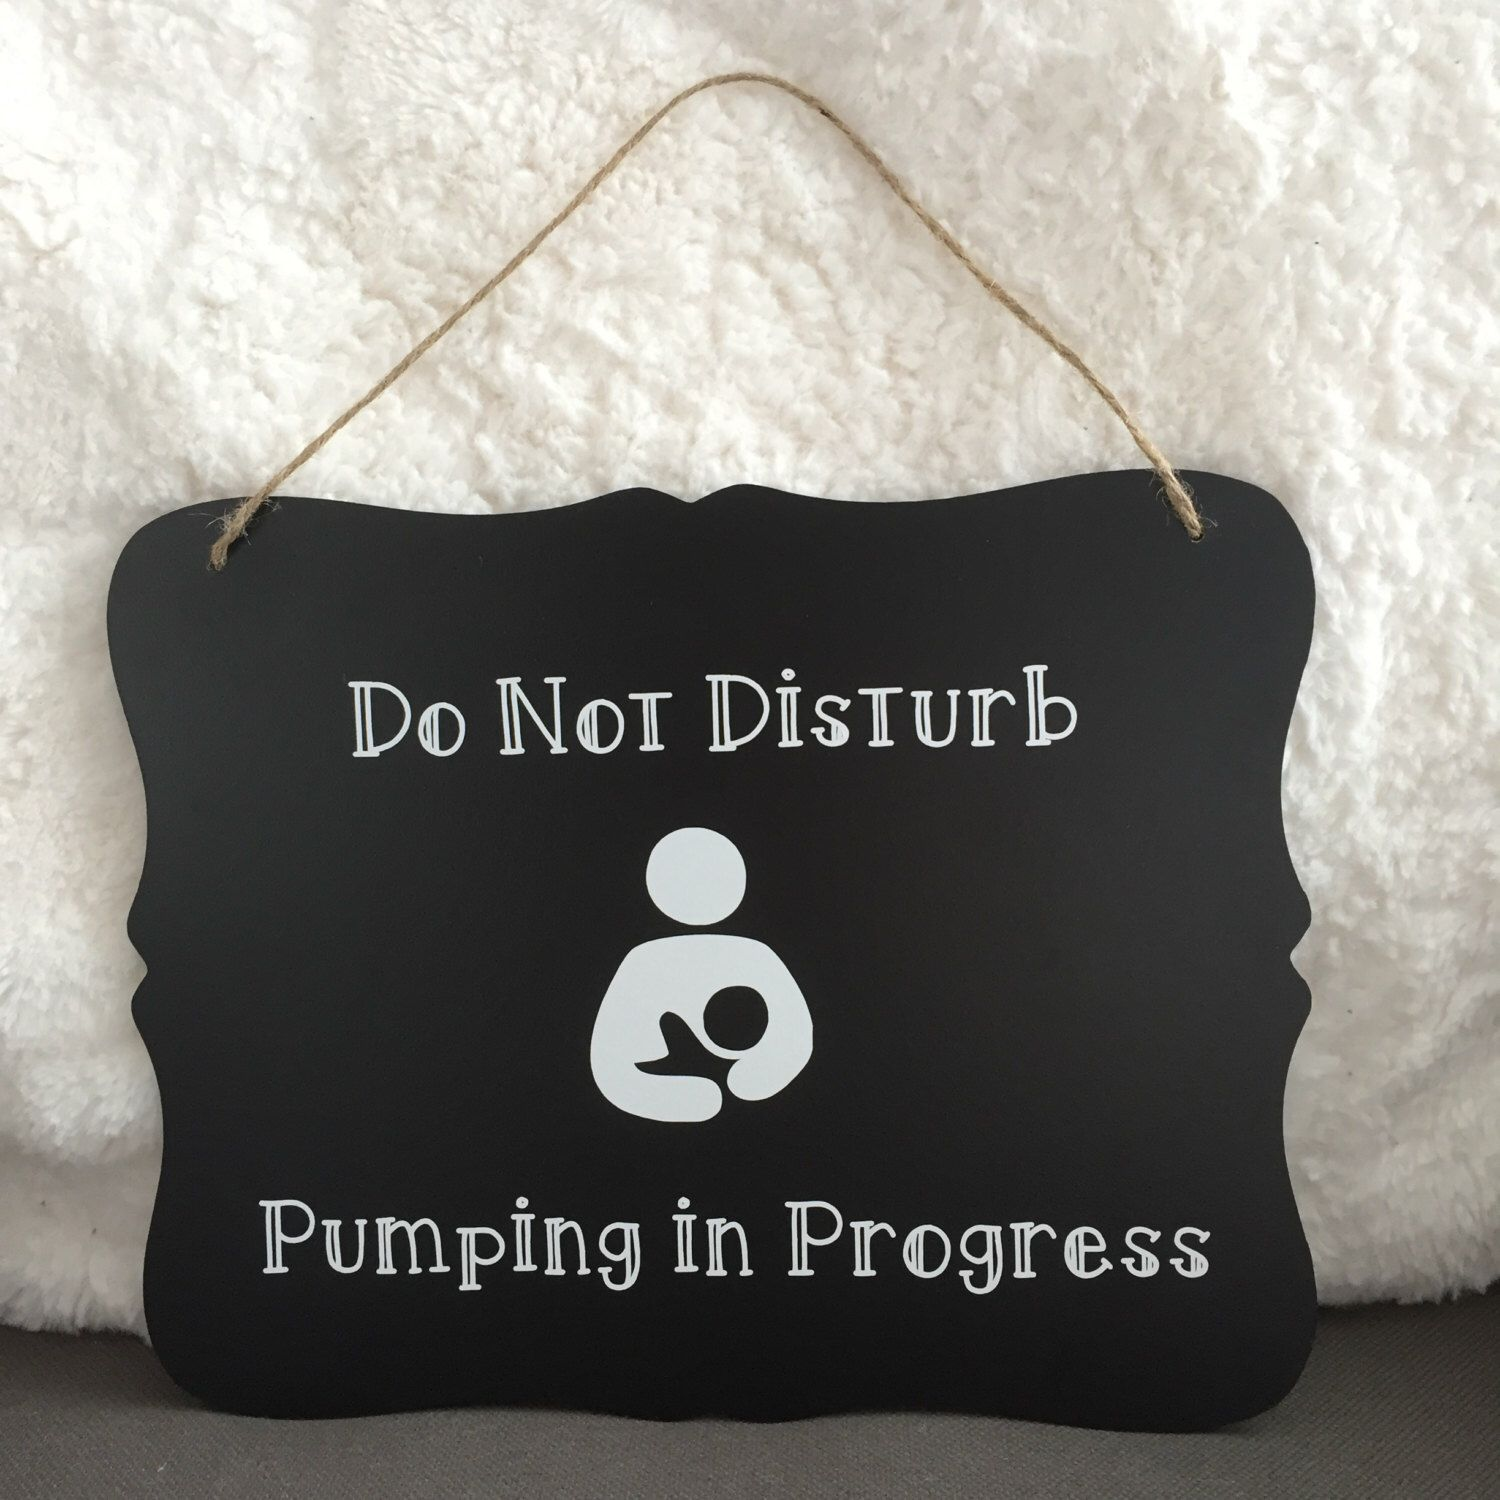 5af3d8a661f84 Pin by Elise Manley on WLS   Room signs, Room, Pumping